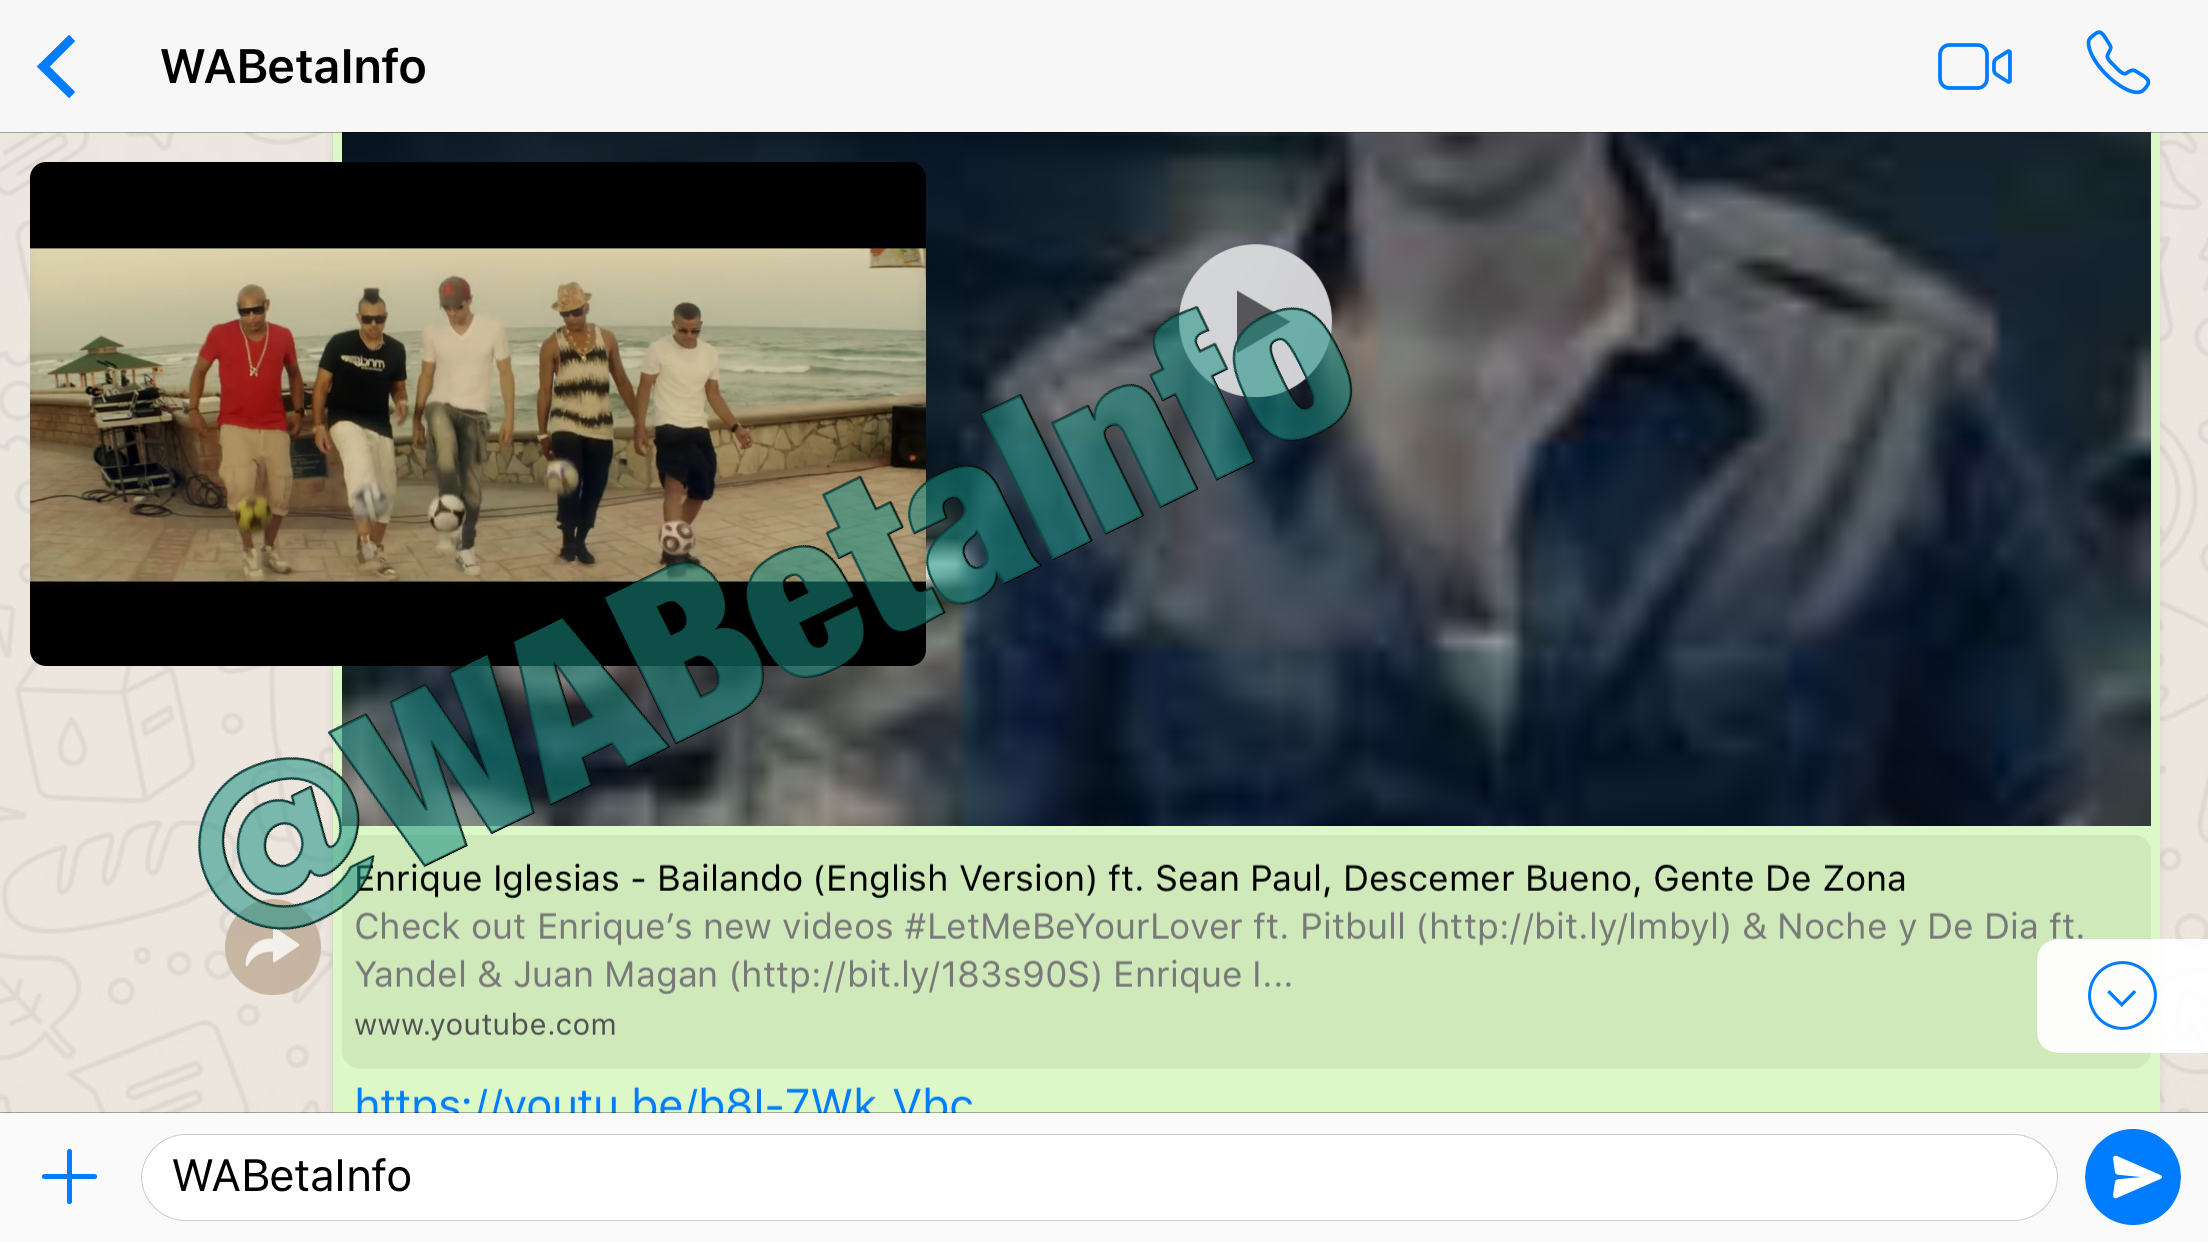 WhatsApp will support YouTube in the app! | WABetaInfo